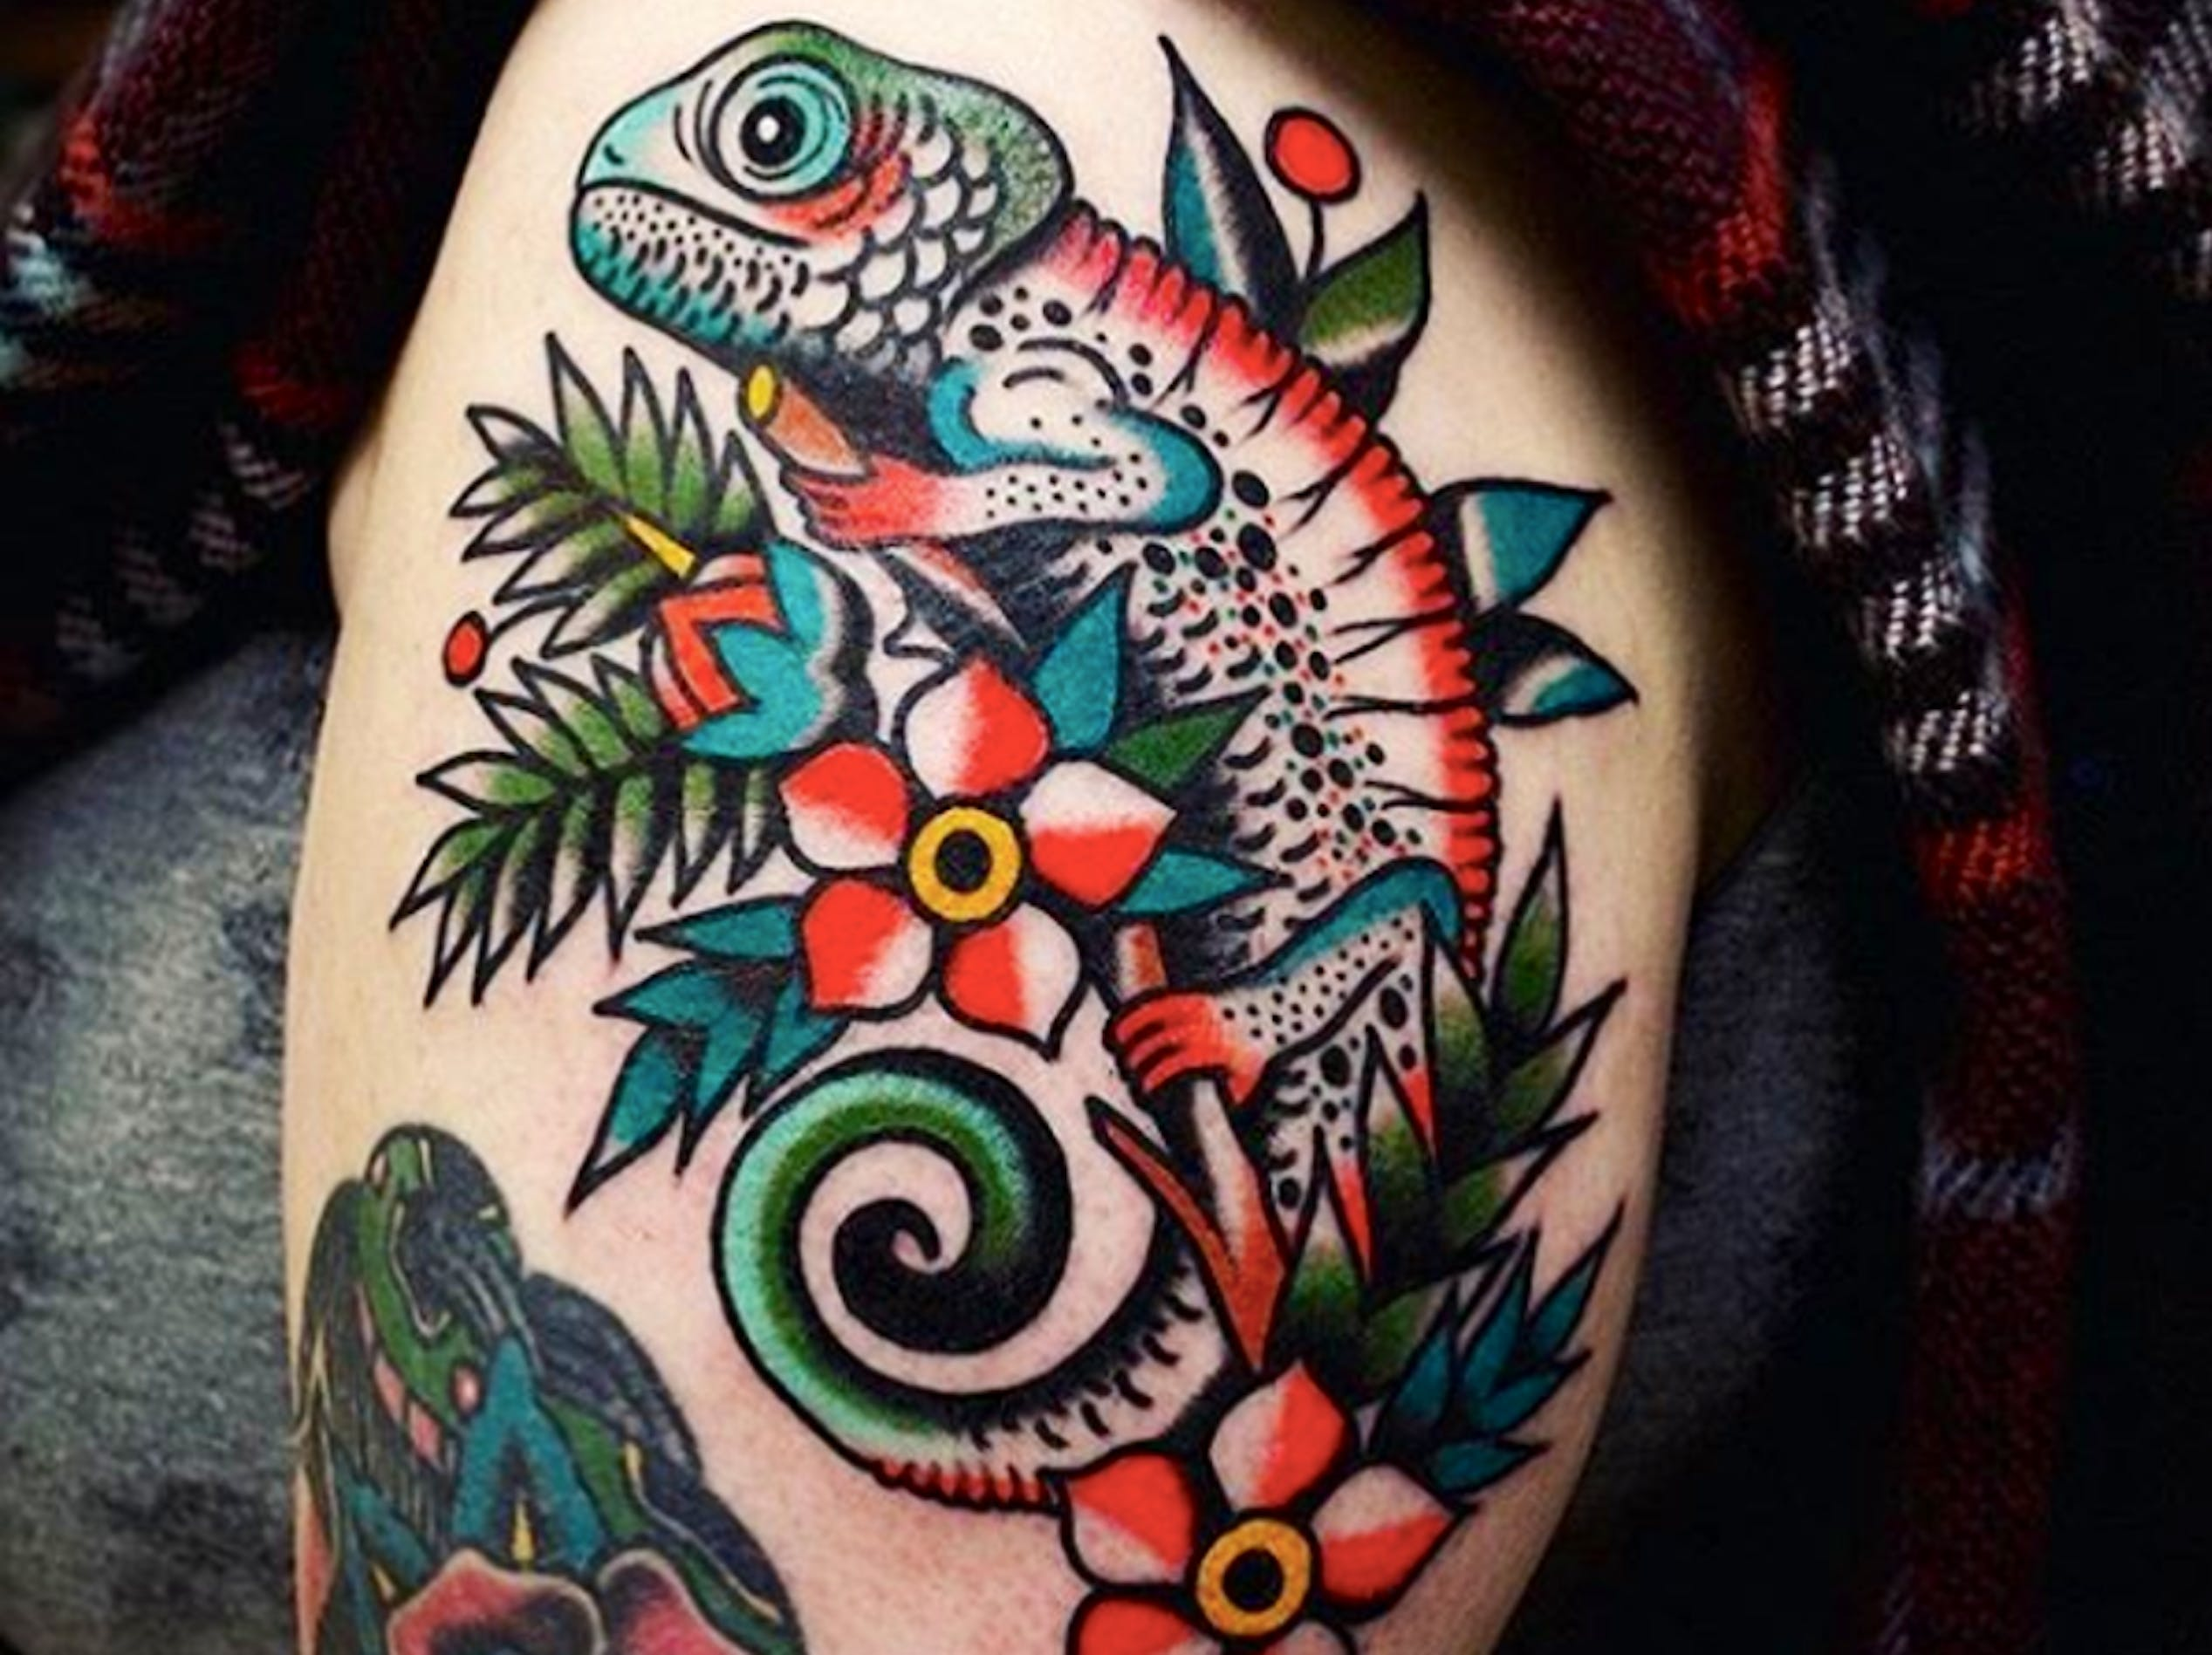 Three Tides Tattoo guest artist Electric Martina uses bold lines and bright colors to make her traditional tattoo style pop.